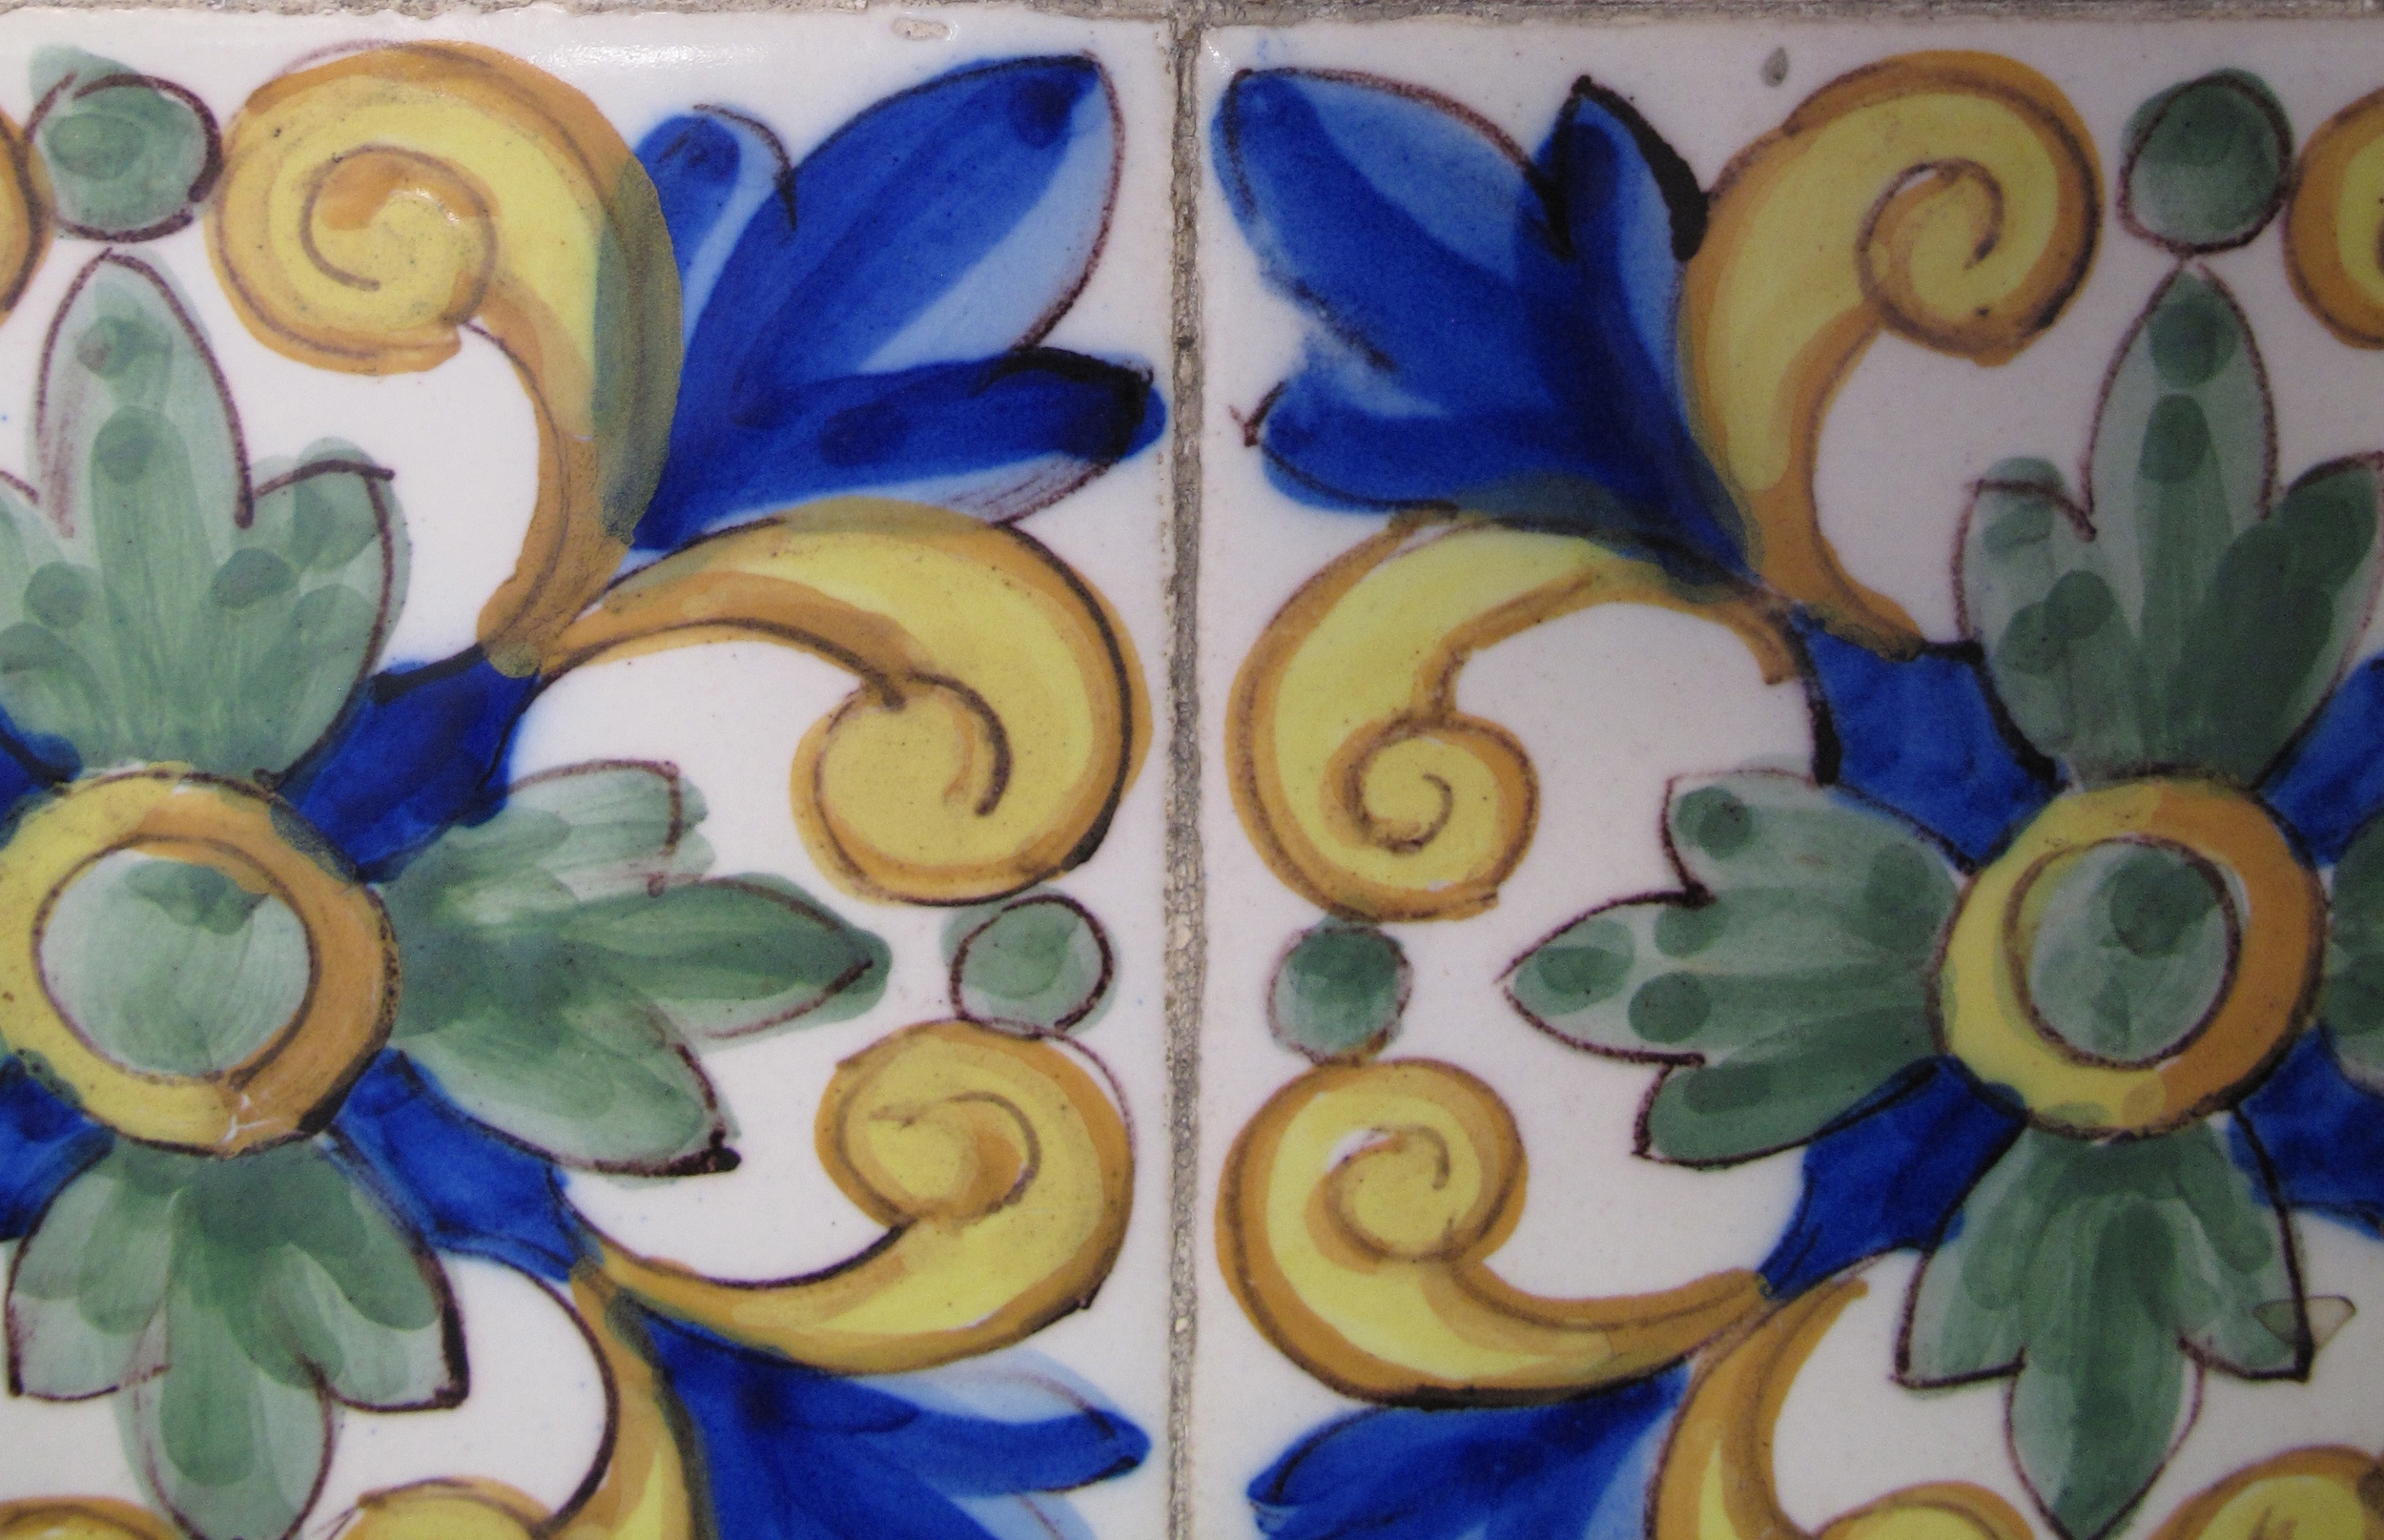 Old tiles with blue and yellow painted curlicues